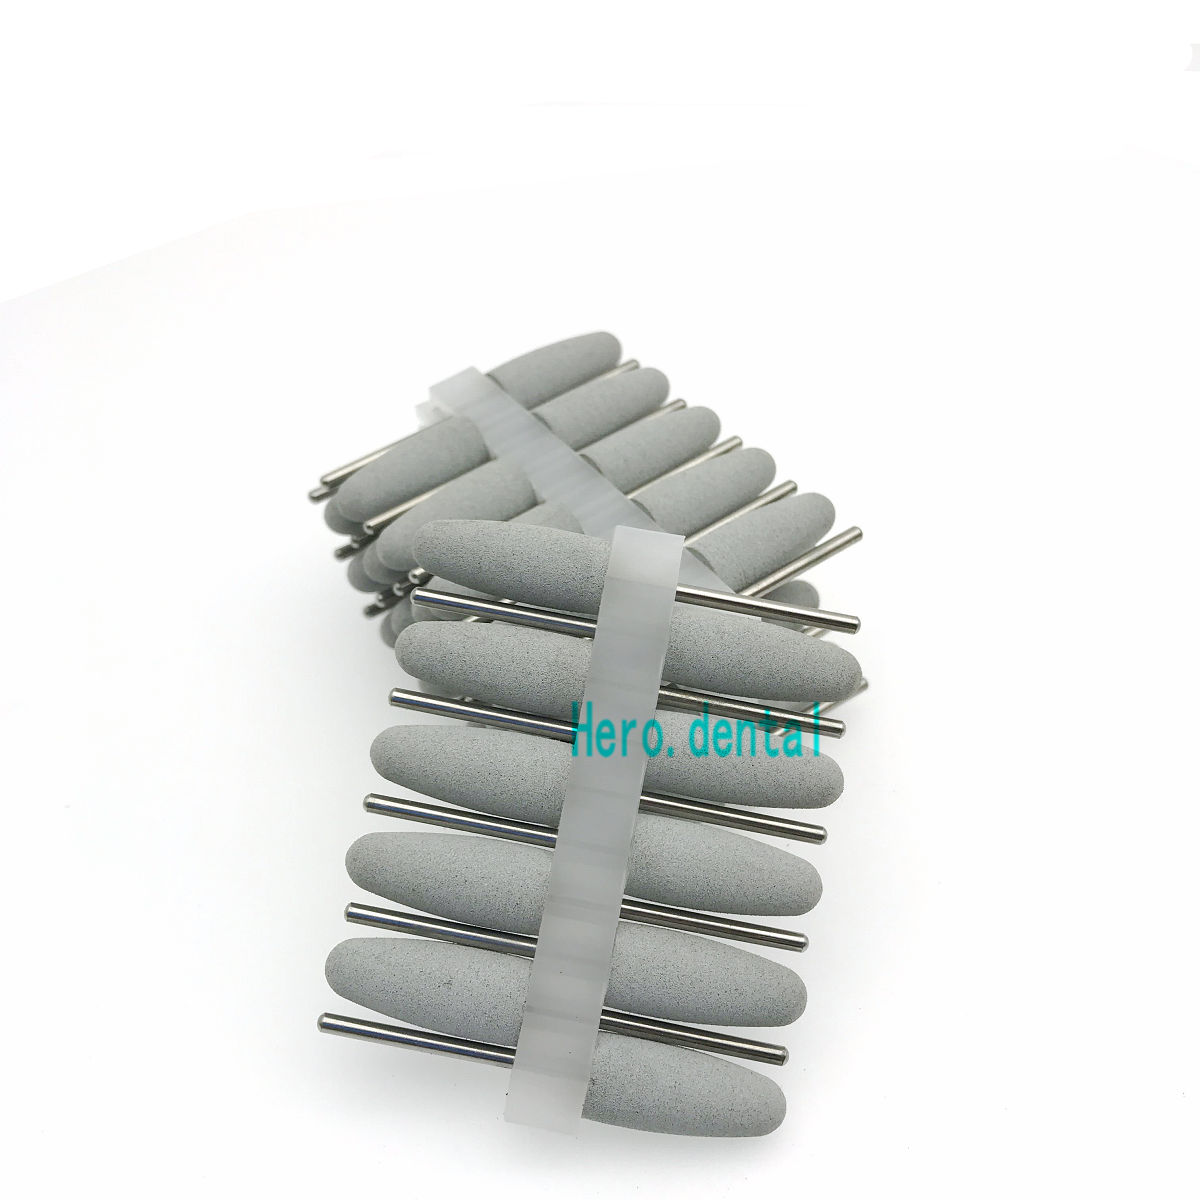 50pcs Silicon Rubber Polishers Dental Polishing Burs For Resin Base Grey